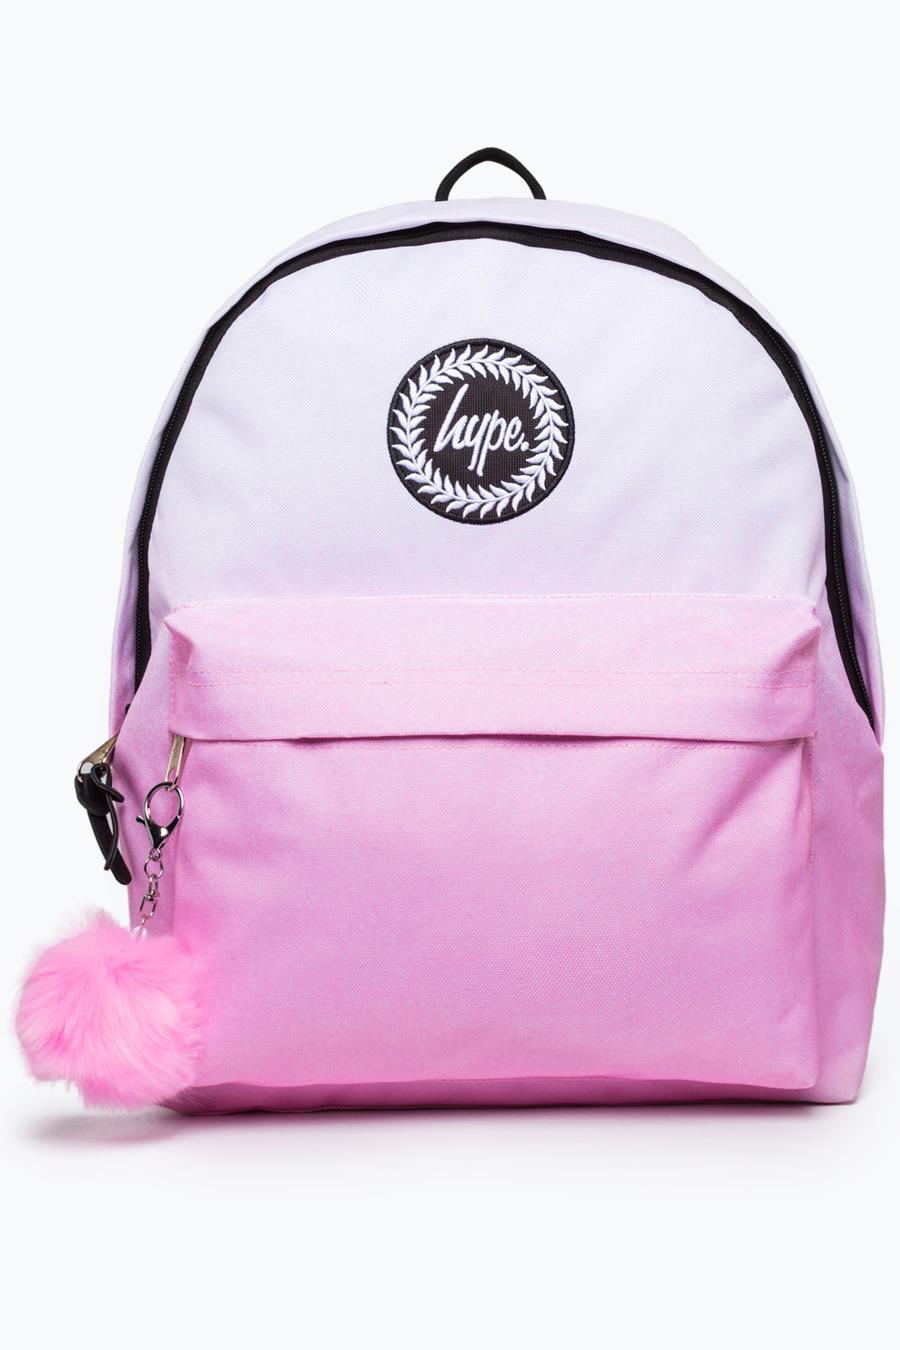 5646fc85616d HYPE BABY PINK BADGE BACKPACK – JustHype ltd